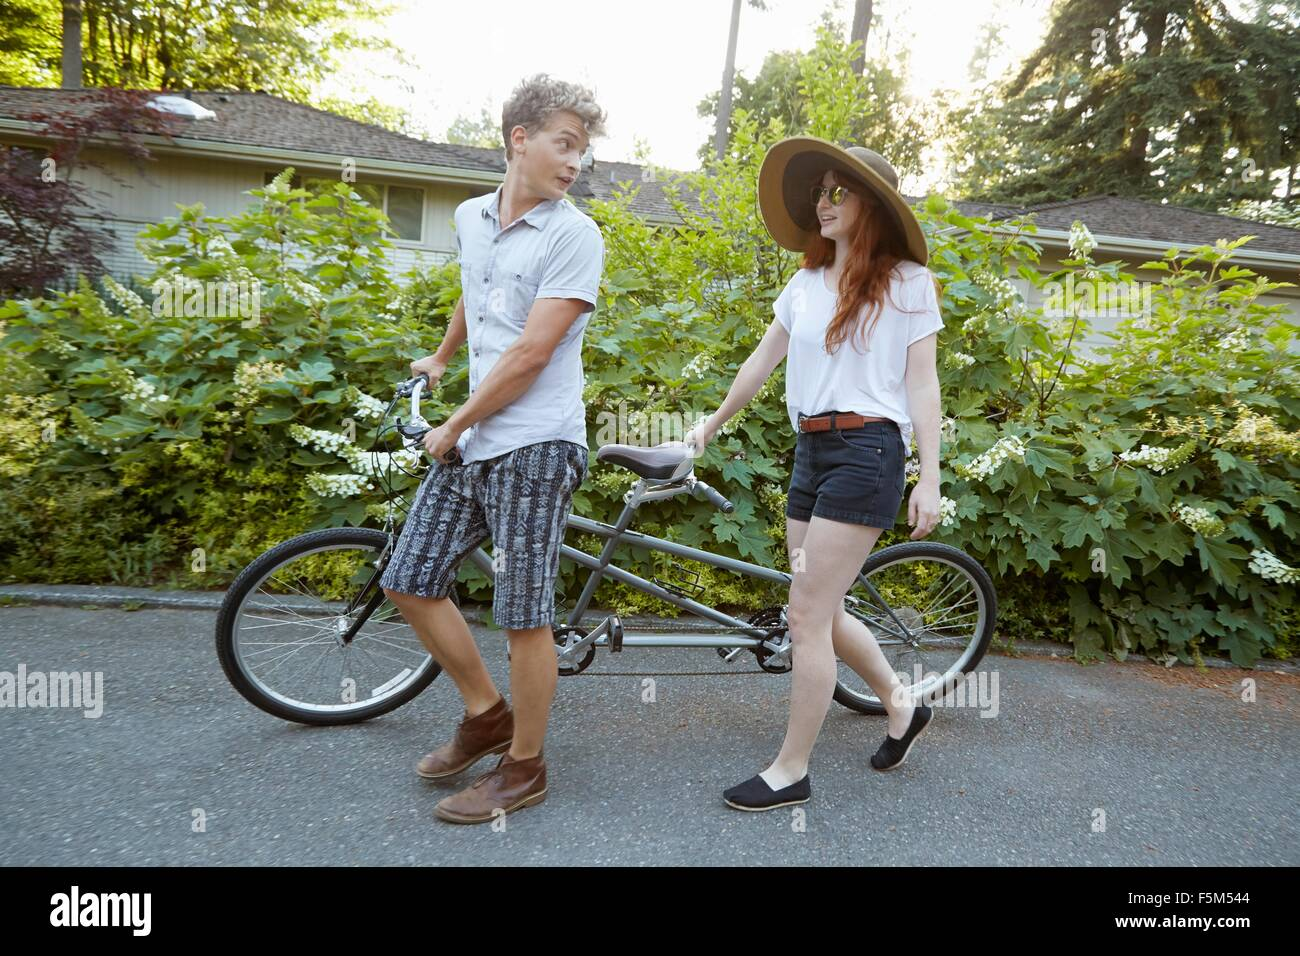 Young couple on suburban road preparing for tandem cycle ride - Stock Image